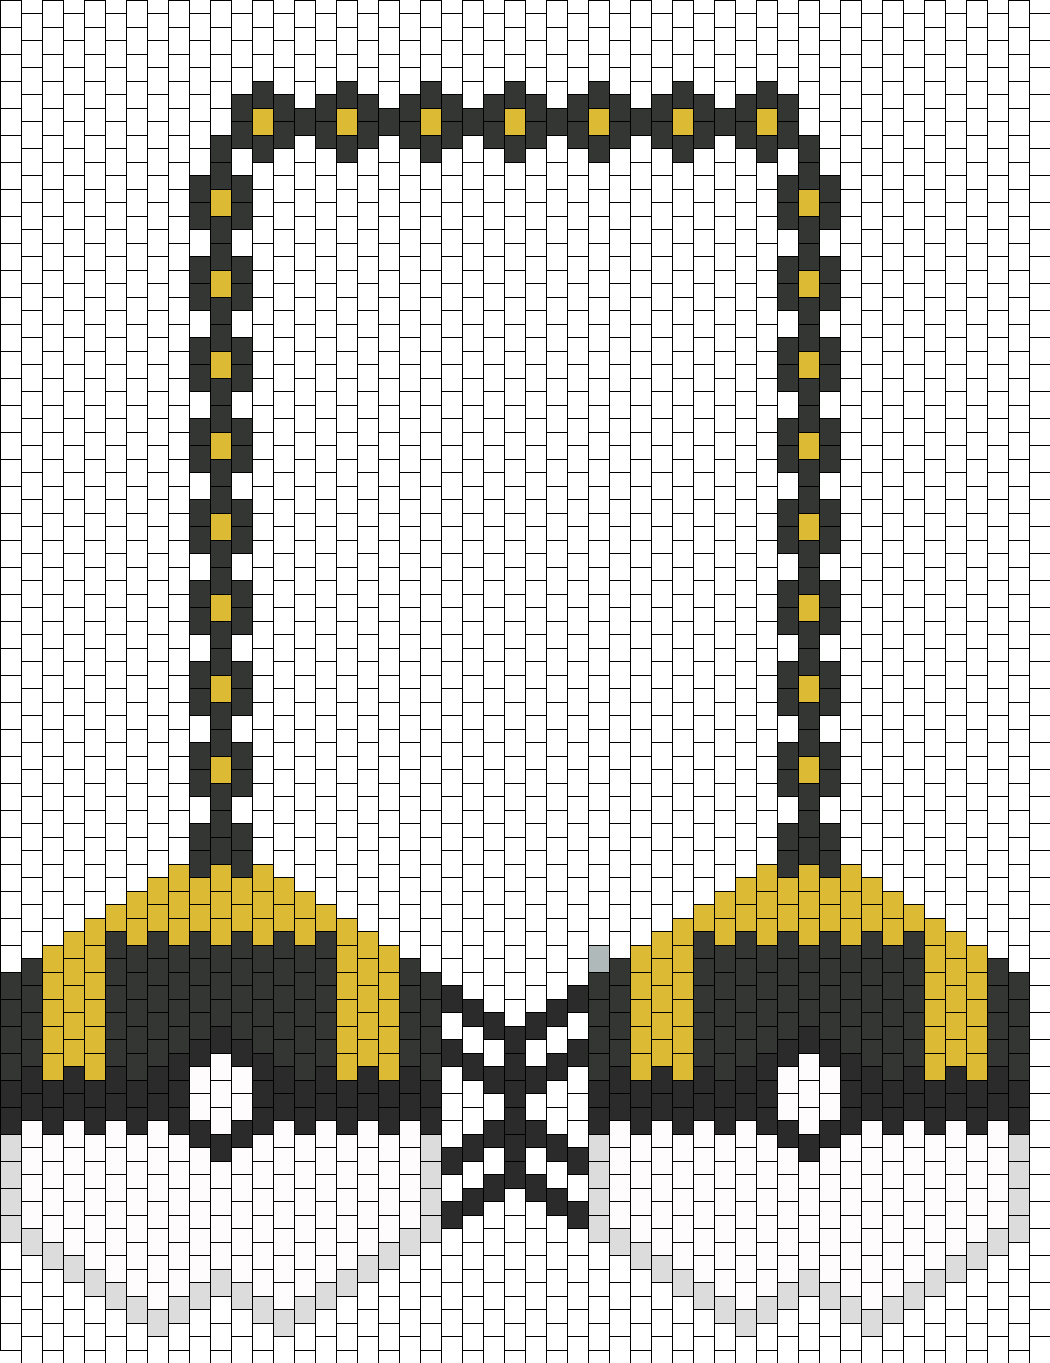 Pokemon Ultra Ball Kandi Bikini Bra Bead Pattern